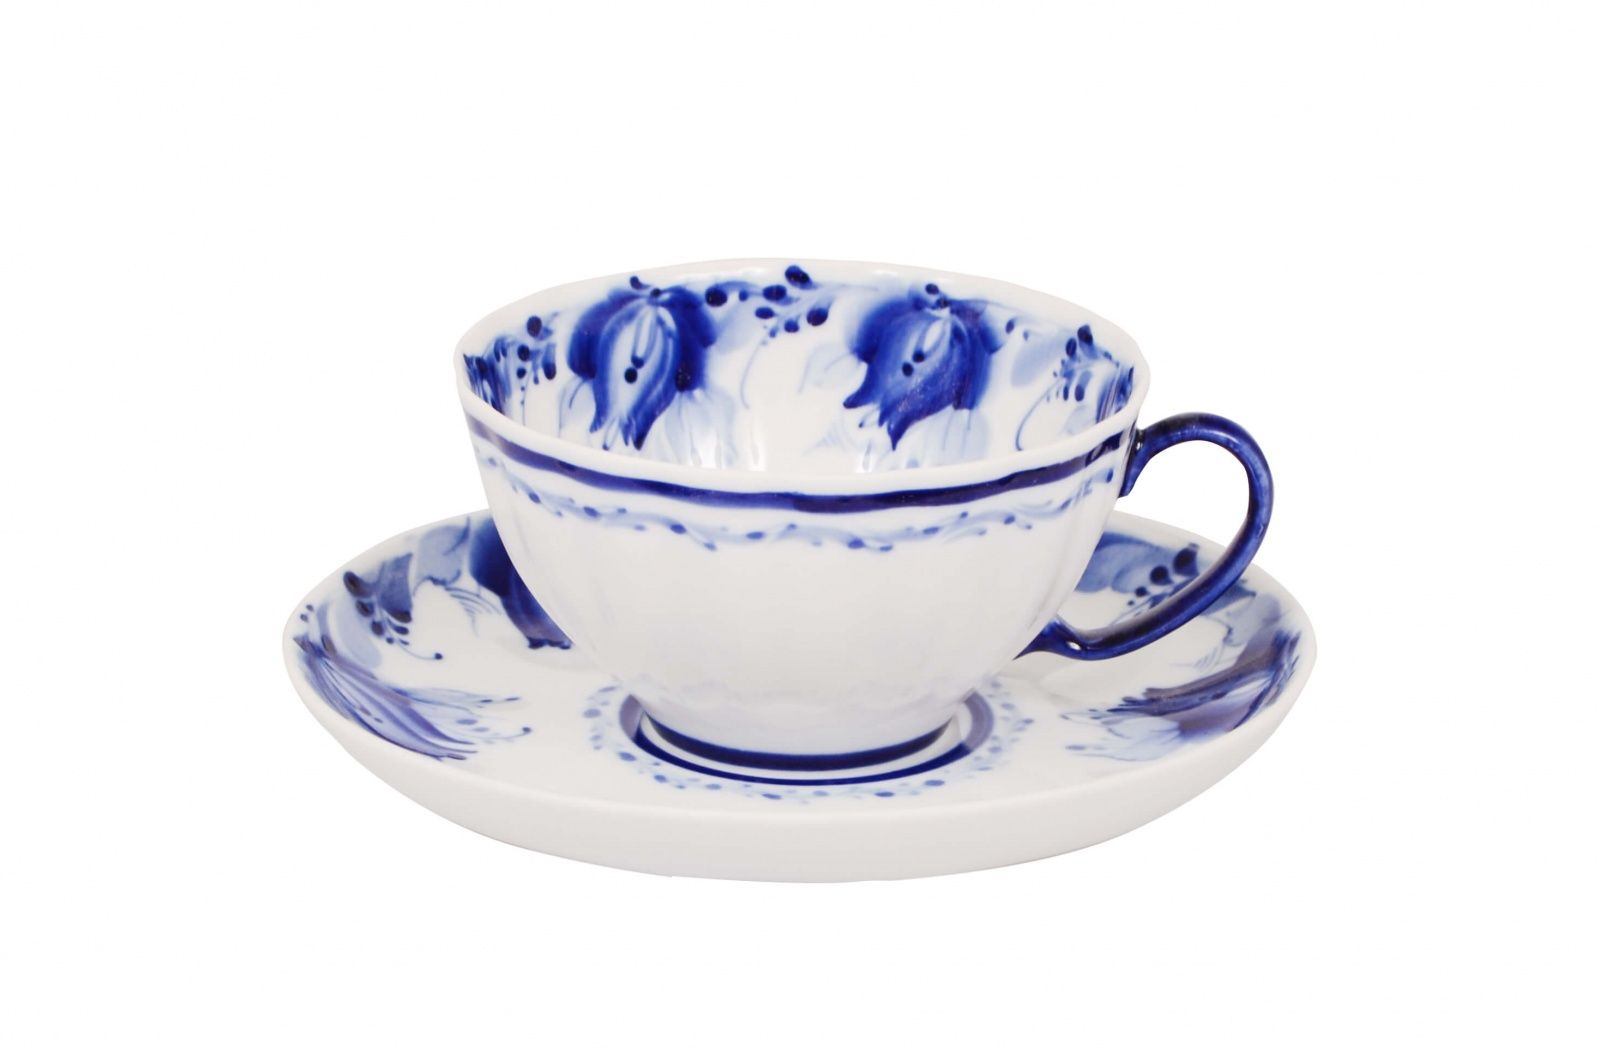 Dulevo porcelain / Tea cup and saucer set, 12 pcs., 275 ml White swan Blue tulips